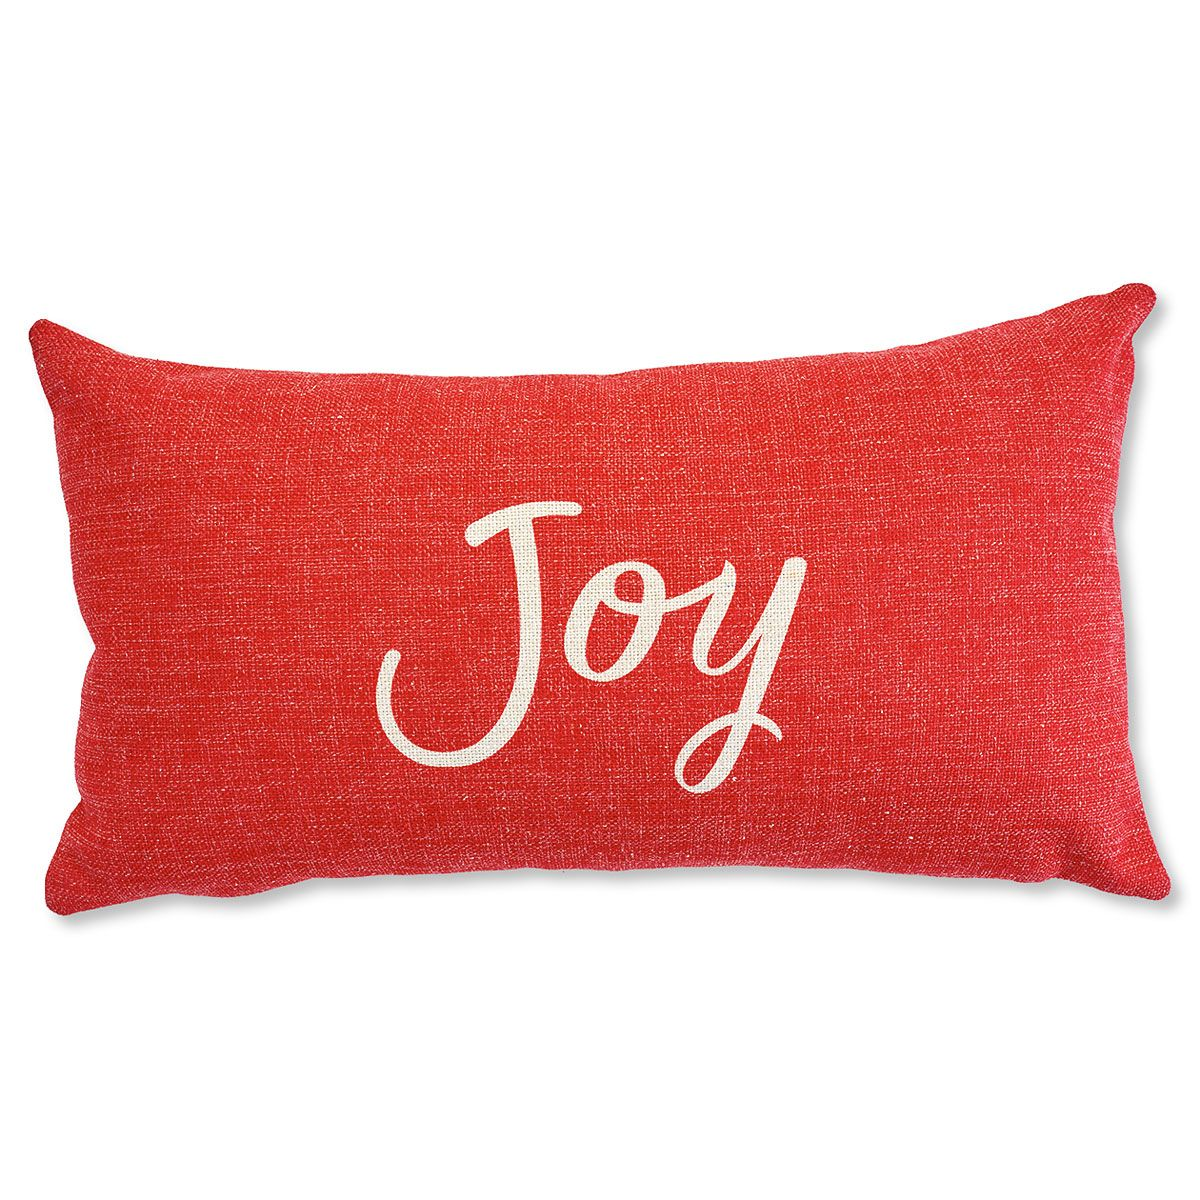 Holiday Decorative Pillows